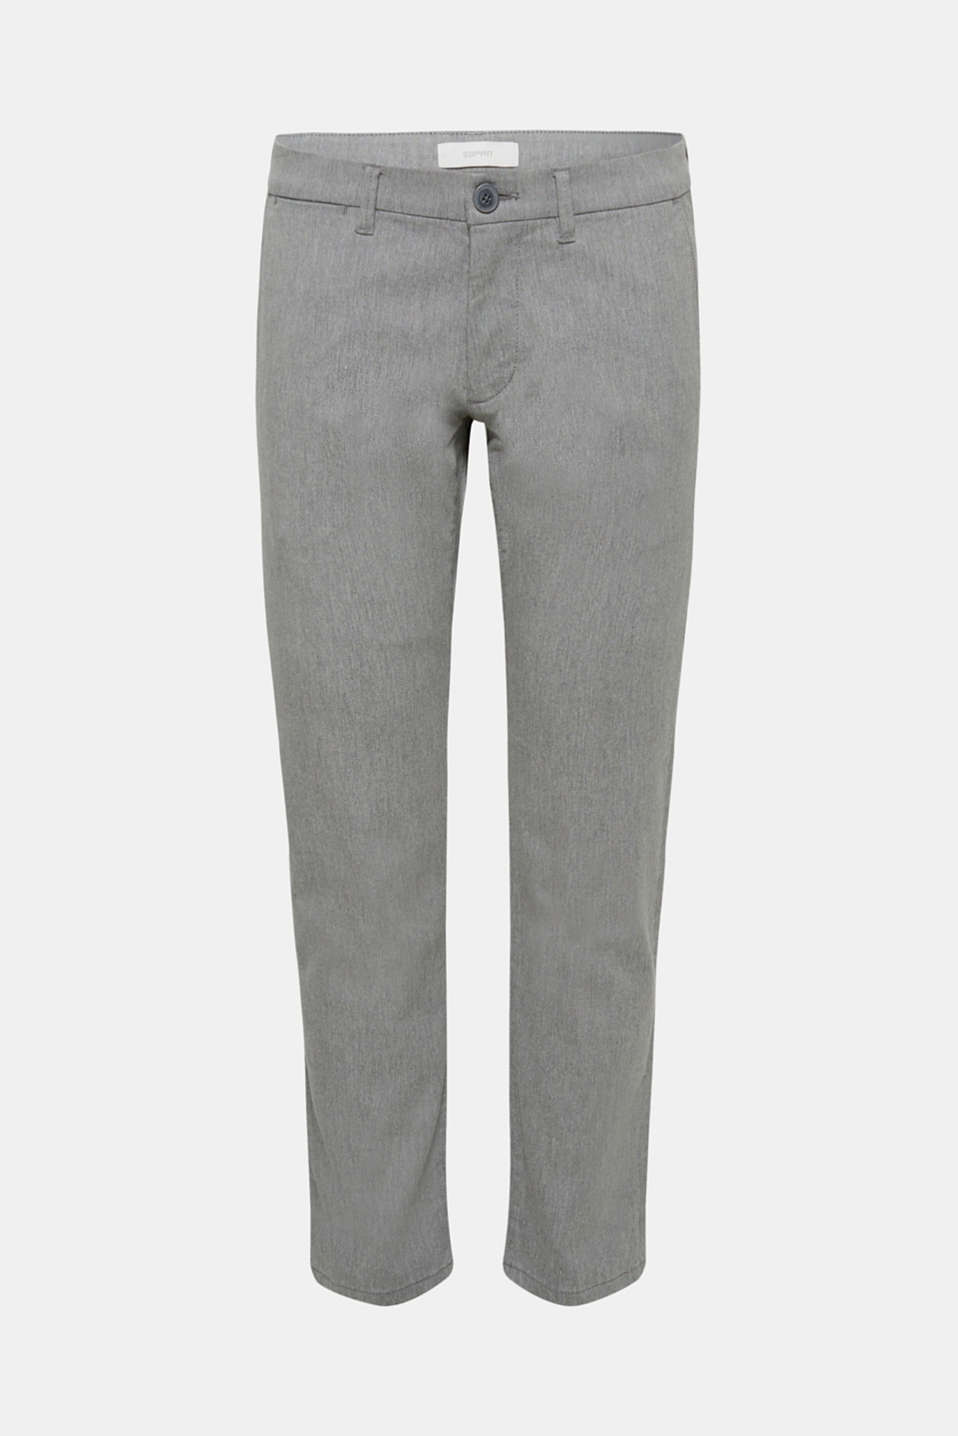 Pants woven Slim fit, GREY, detail image number 6